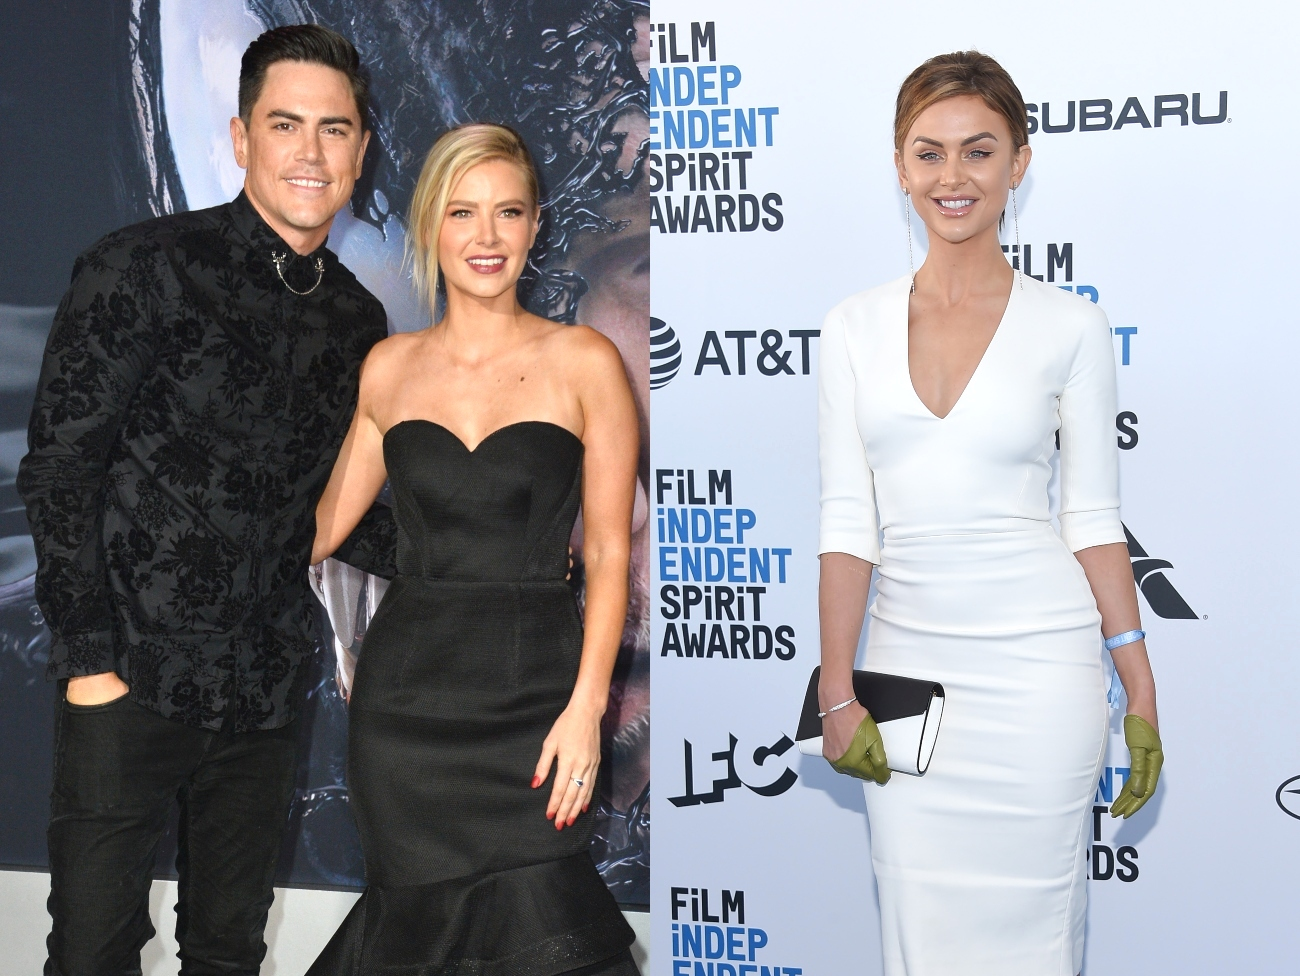 Vanderpump Rules Tom Sandoval Reveals Why He Was Annoyed by Lala Kent and Ariana Madix's Hookup, Is Ariana Open to a Threesome?